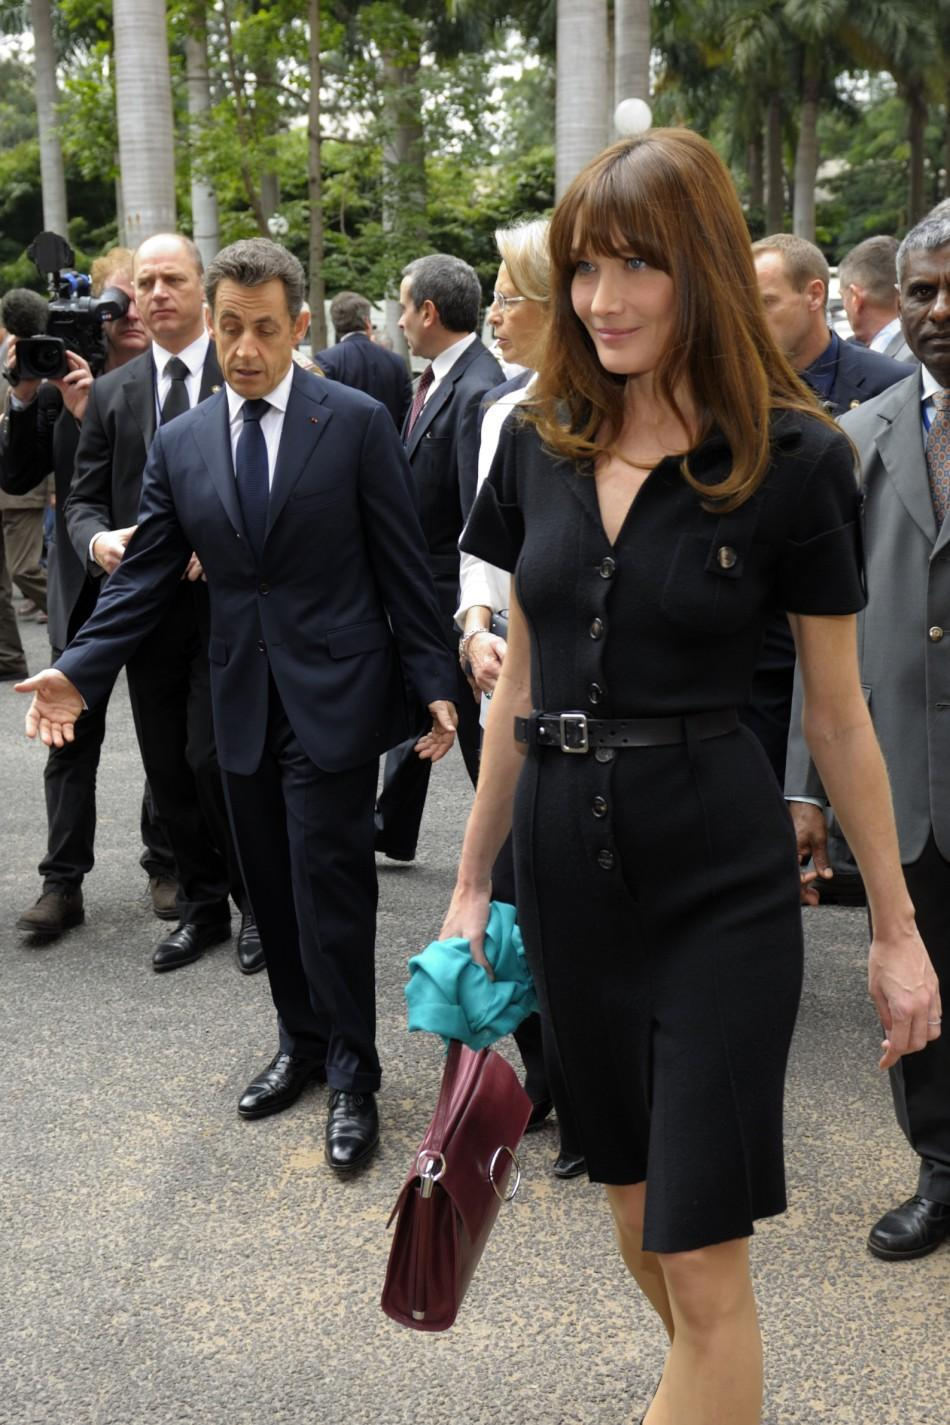 France's President Sarkozy and First Lady Carla Bruni-Sarkozy leave a meeting at the ISRO satellite center in Bangalore